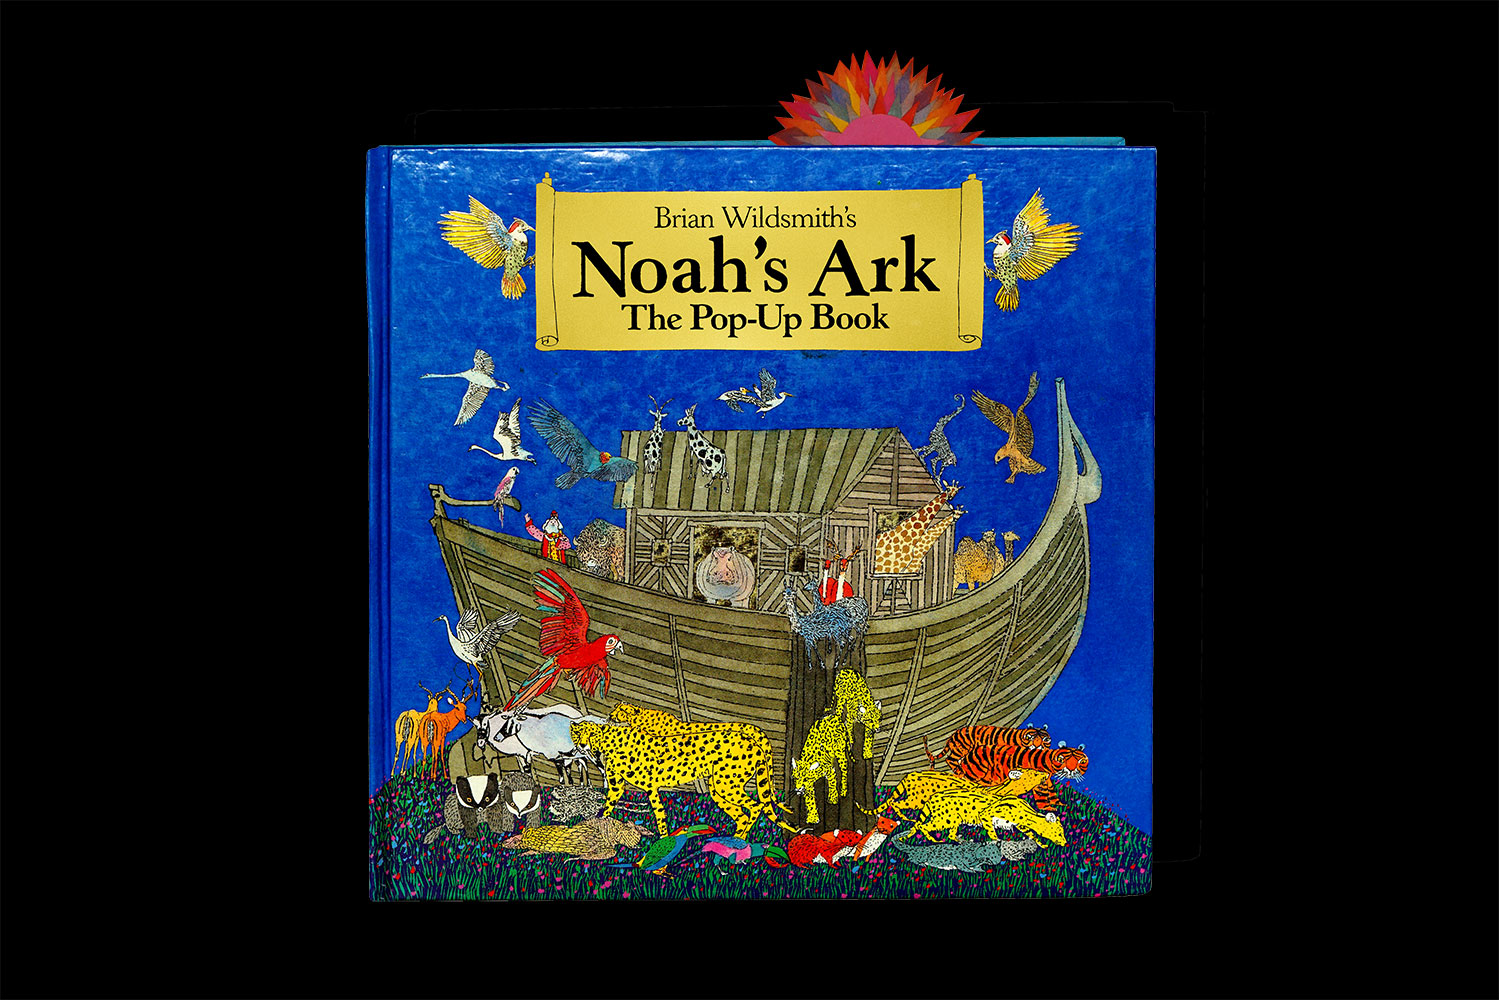 noahs-ark-pop-up-cover-brian-wildsmith-copy.jpg